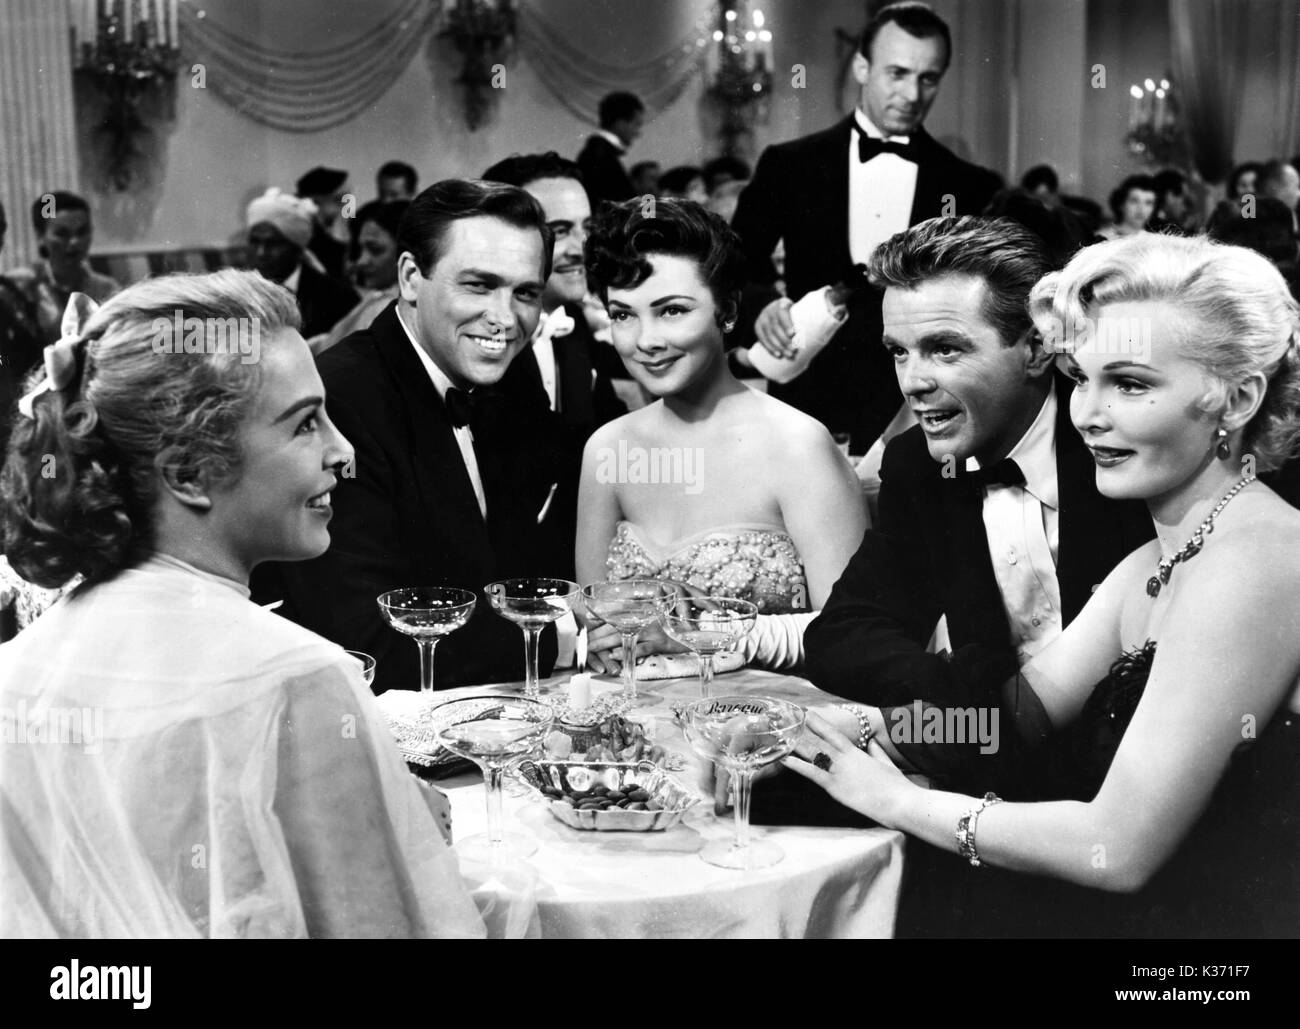 LOVELY TO LOOK AT L-R Marge Champion, Howard Keel, Kathryn Grayson, Gower Champion and Zsa Zsa Gabor - Stock Image